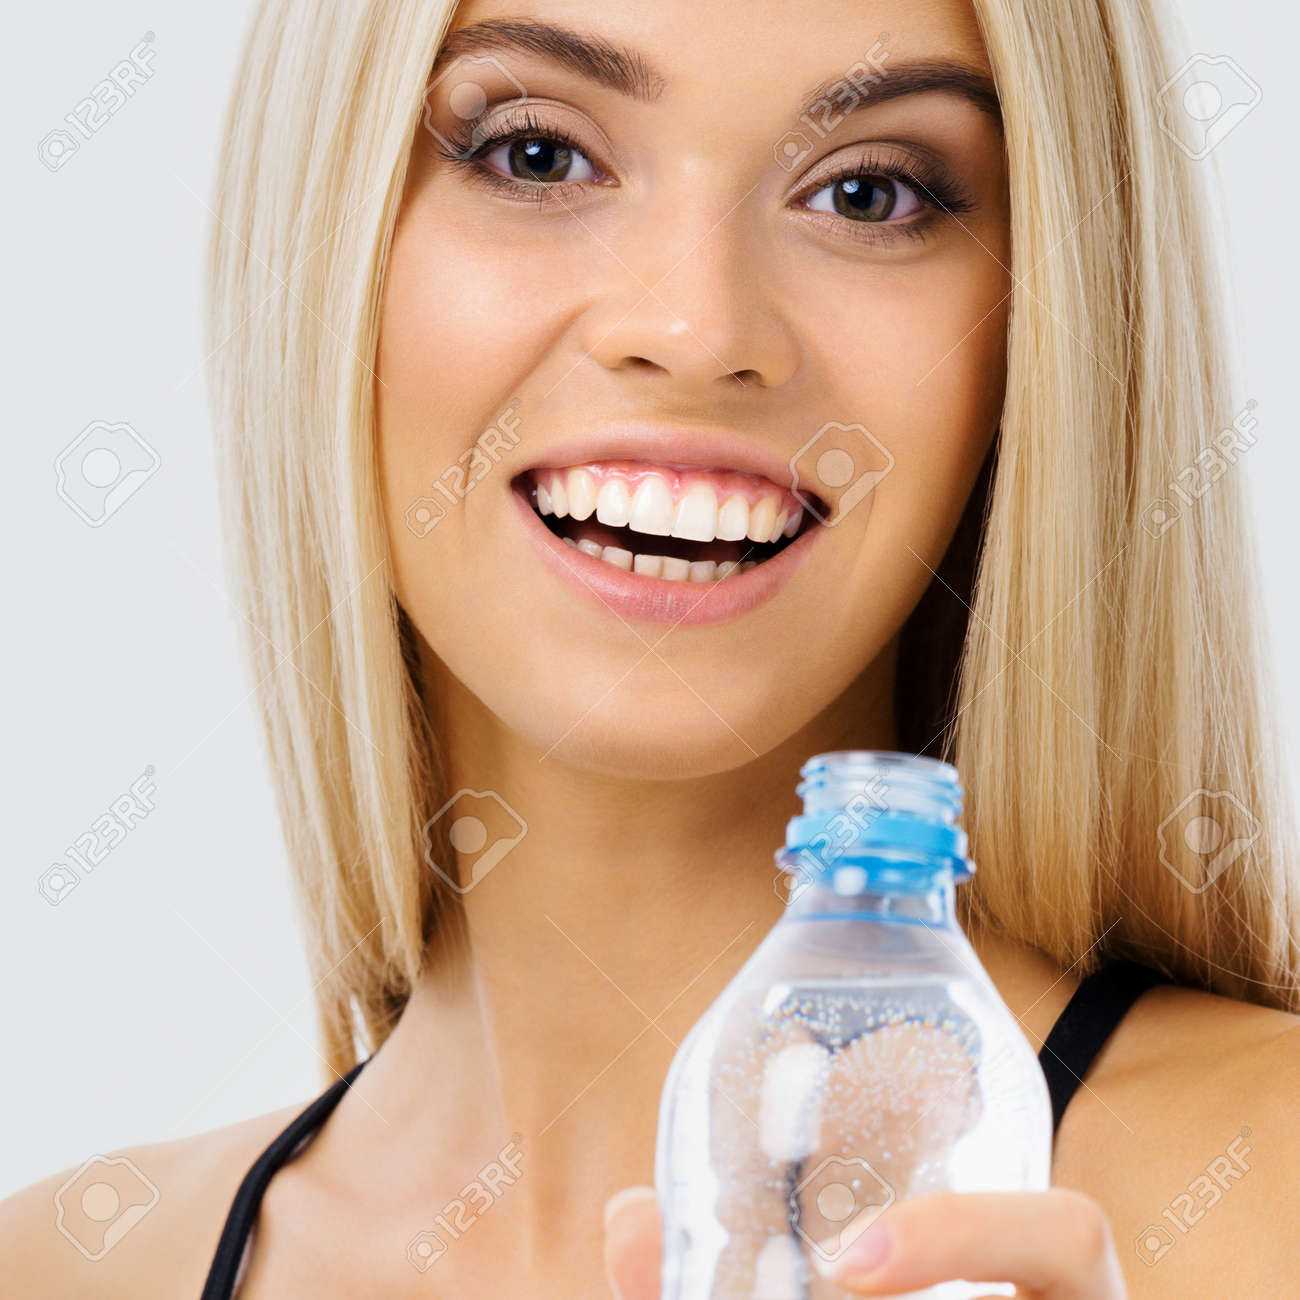 Image of happy smiling young blond woman with bottle of water, over grey background. Female fitness instructor or personal trainer at studio shot. Health, beauty and fitness concept. - 171730380